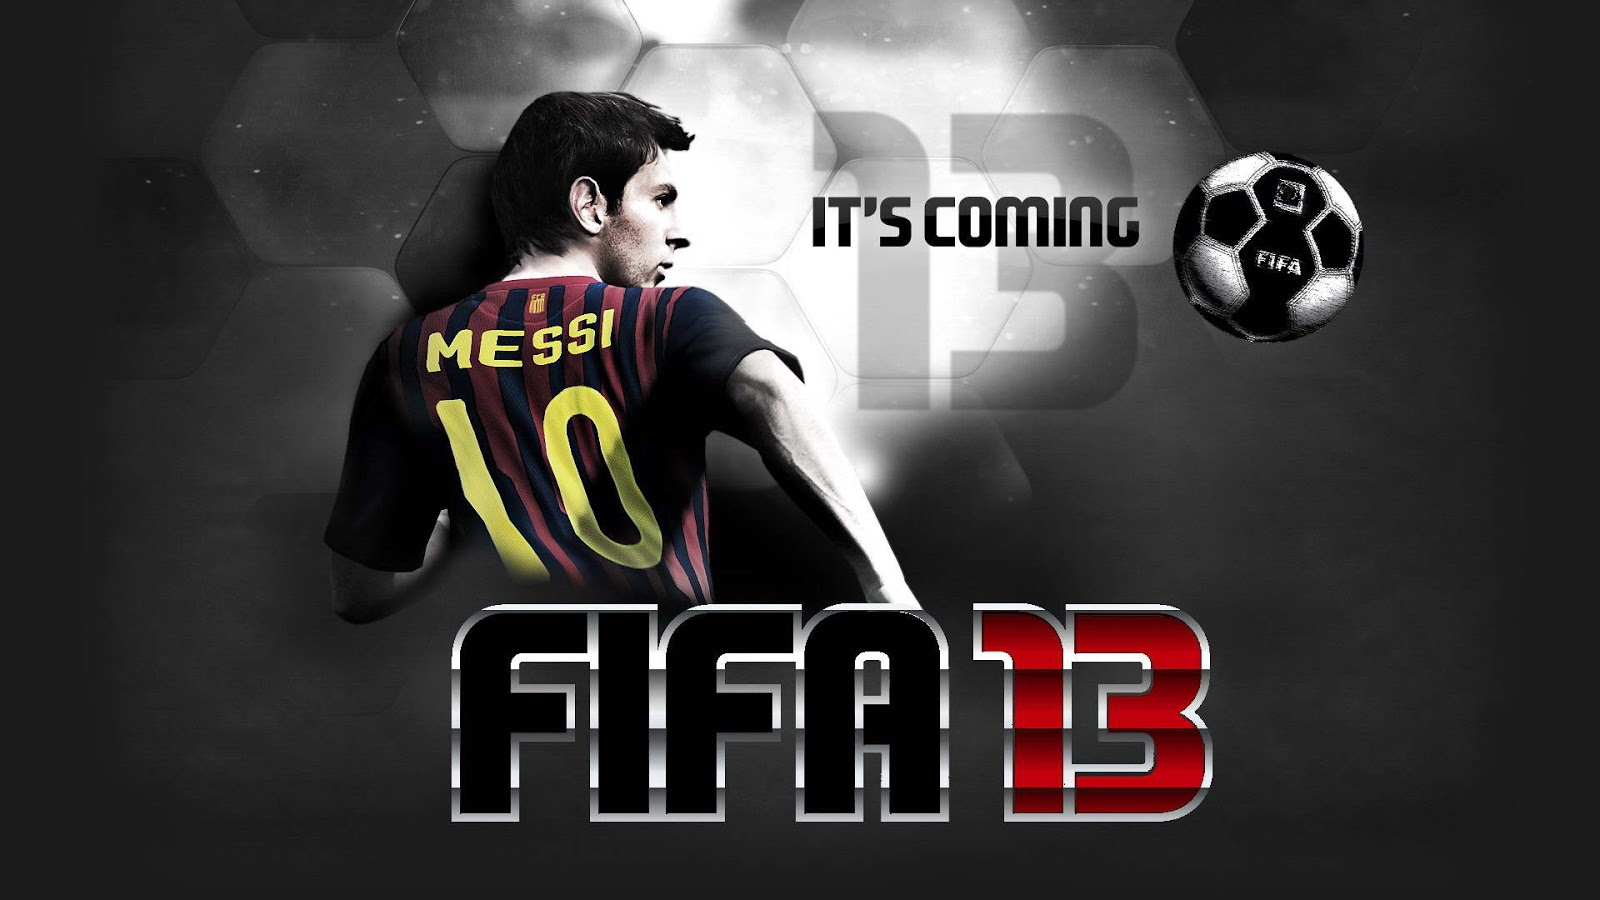 FIFA 13 Wallpaper HD